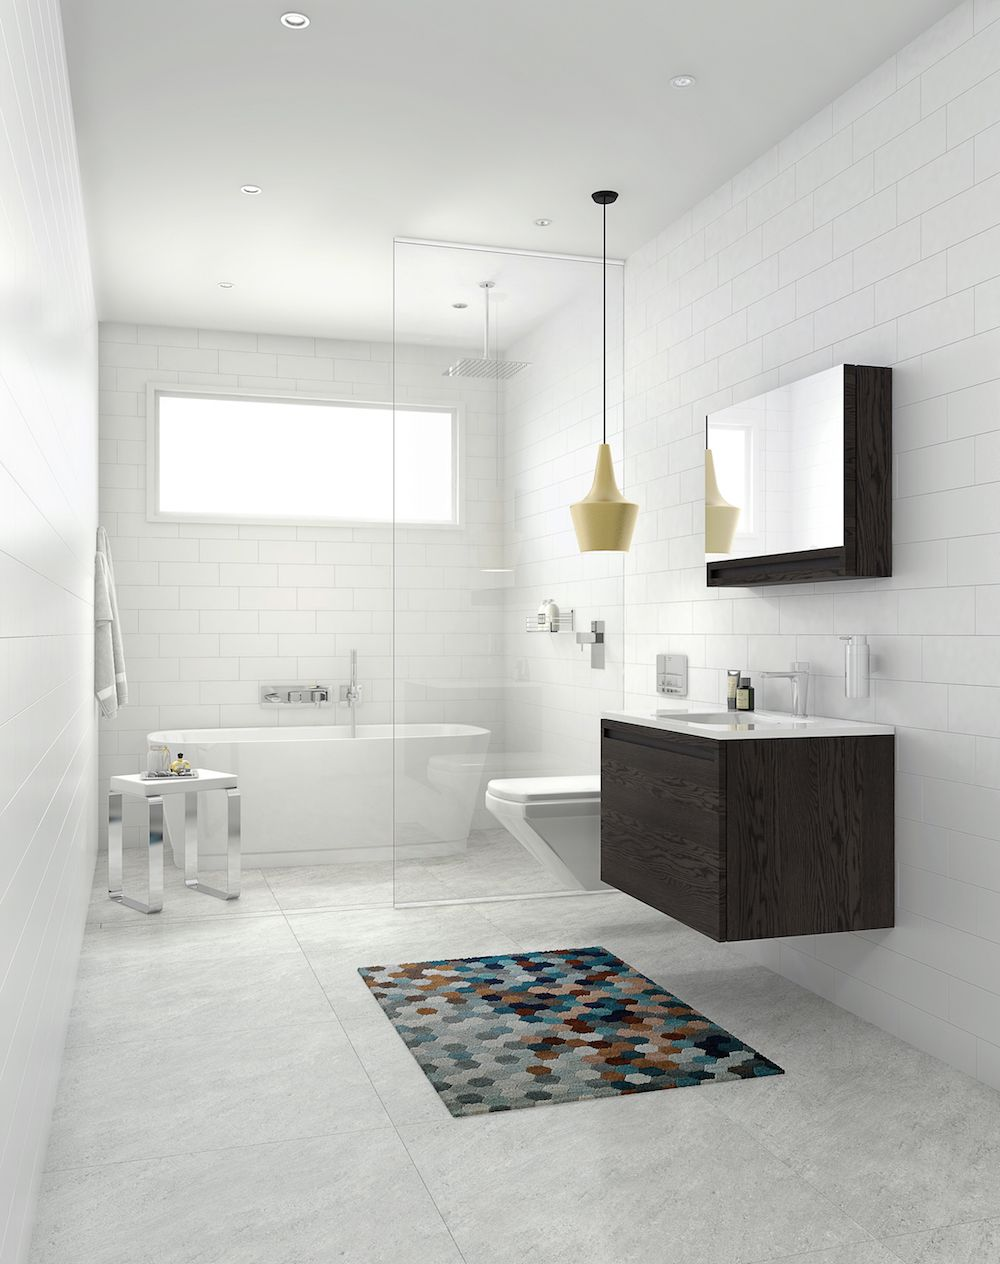 Transitional Bathrooms By W2 Design | 6041 interior | Pinterest ...